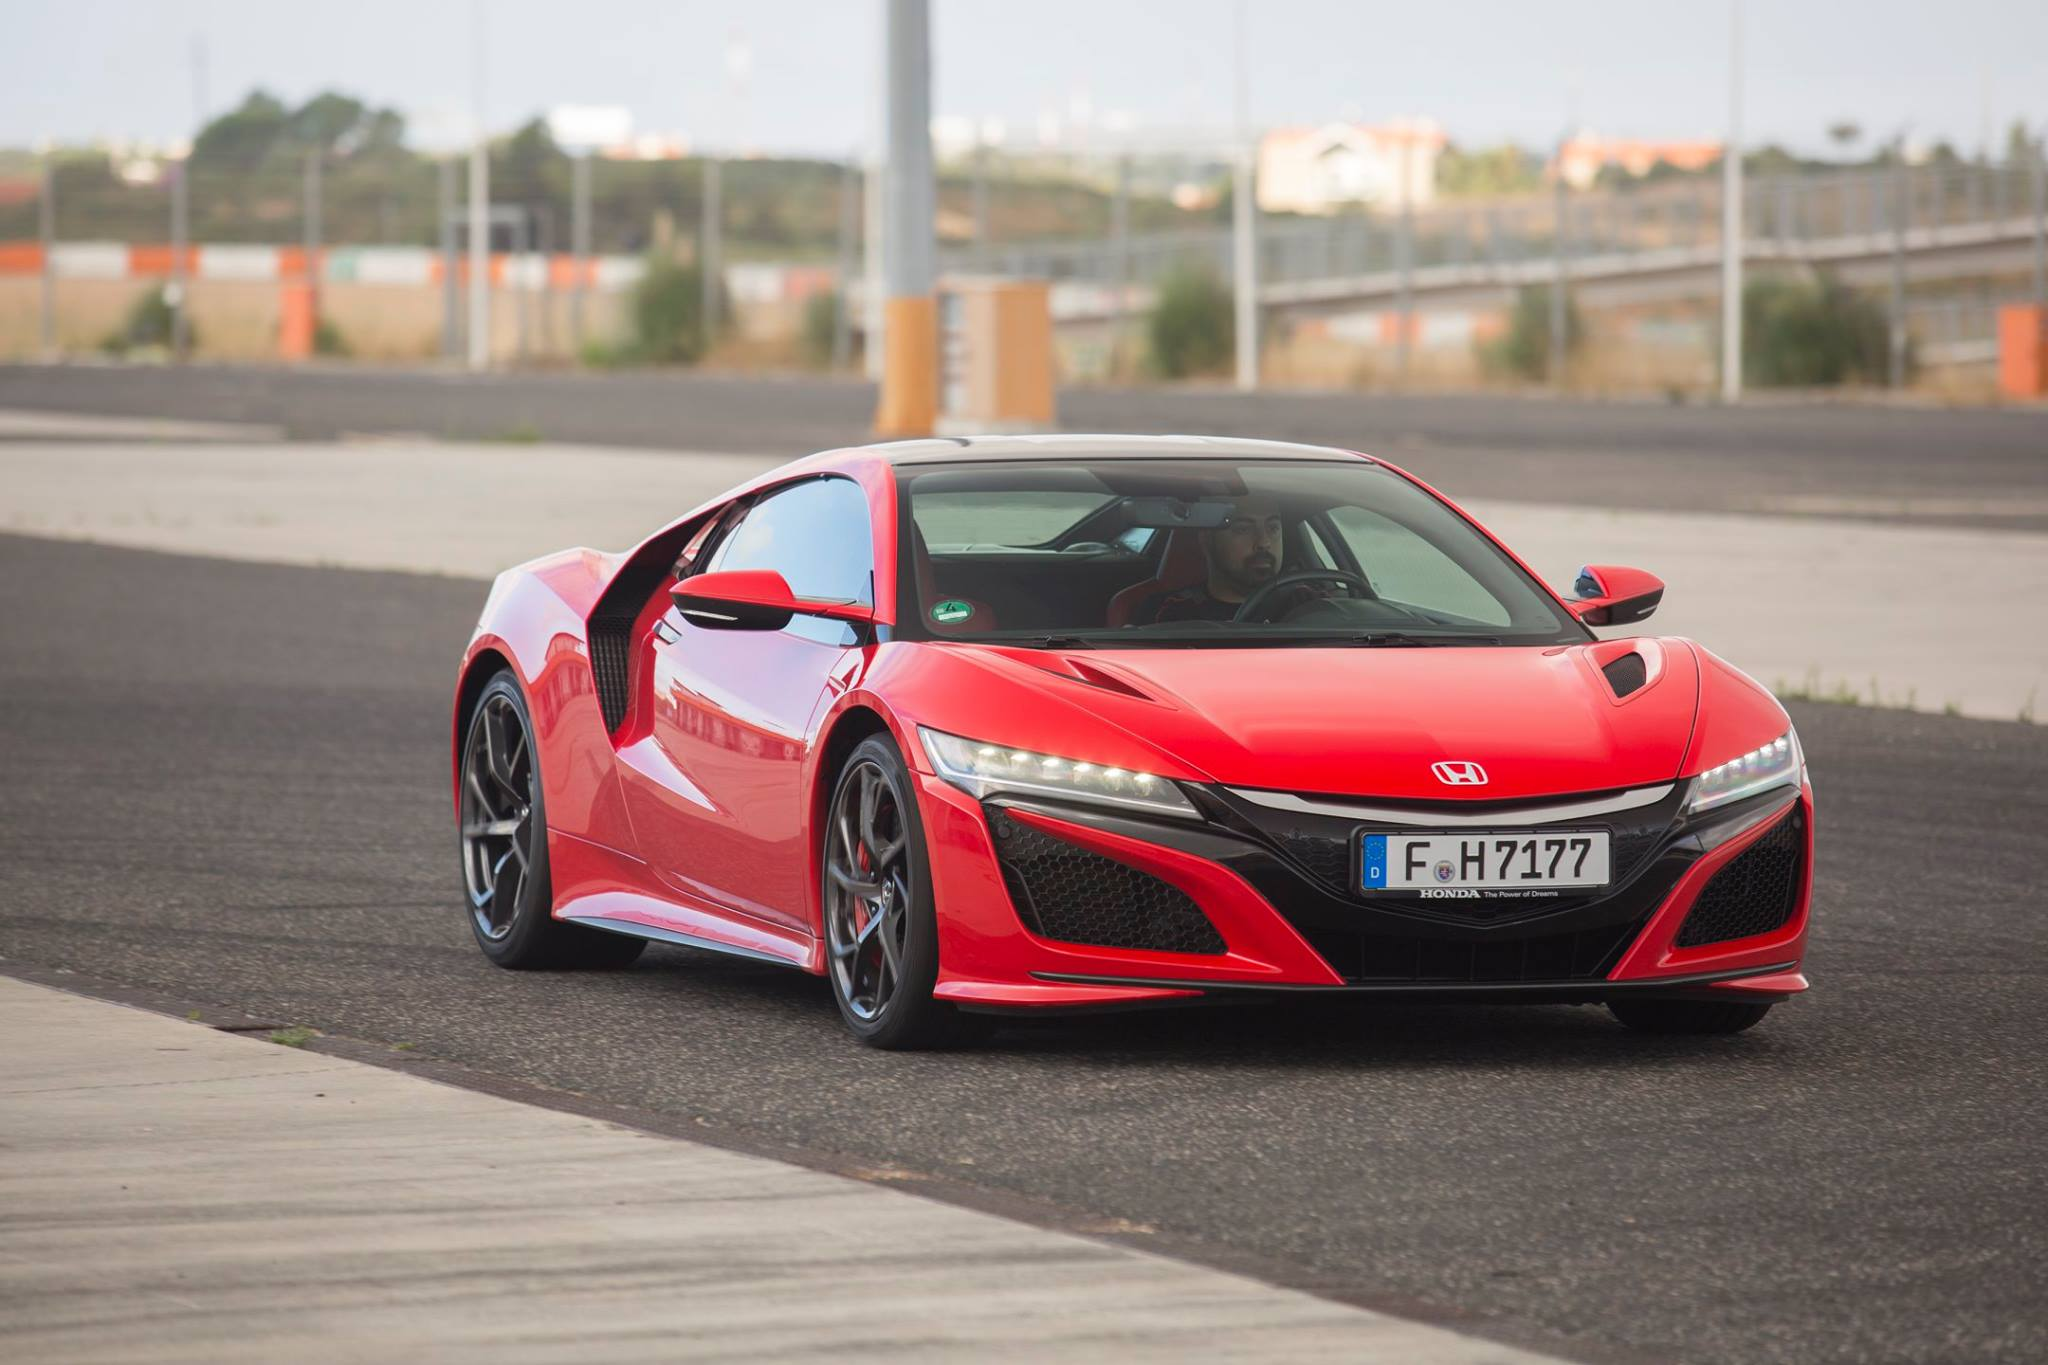 2017 Honda NSX Review - Photos | CarAdvice